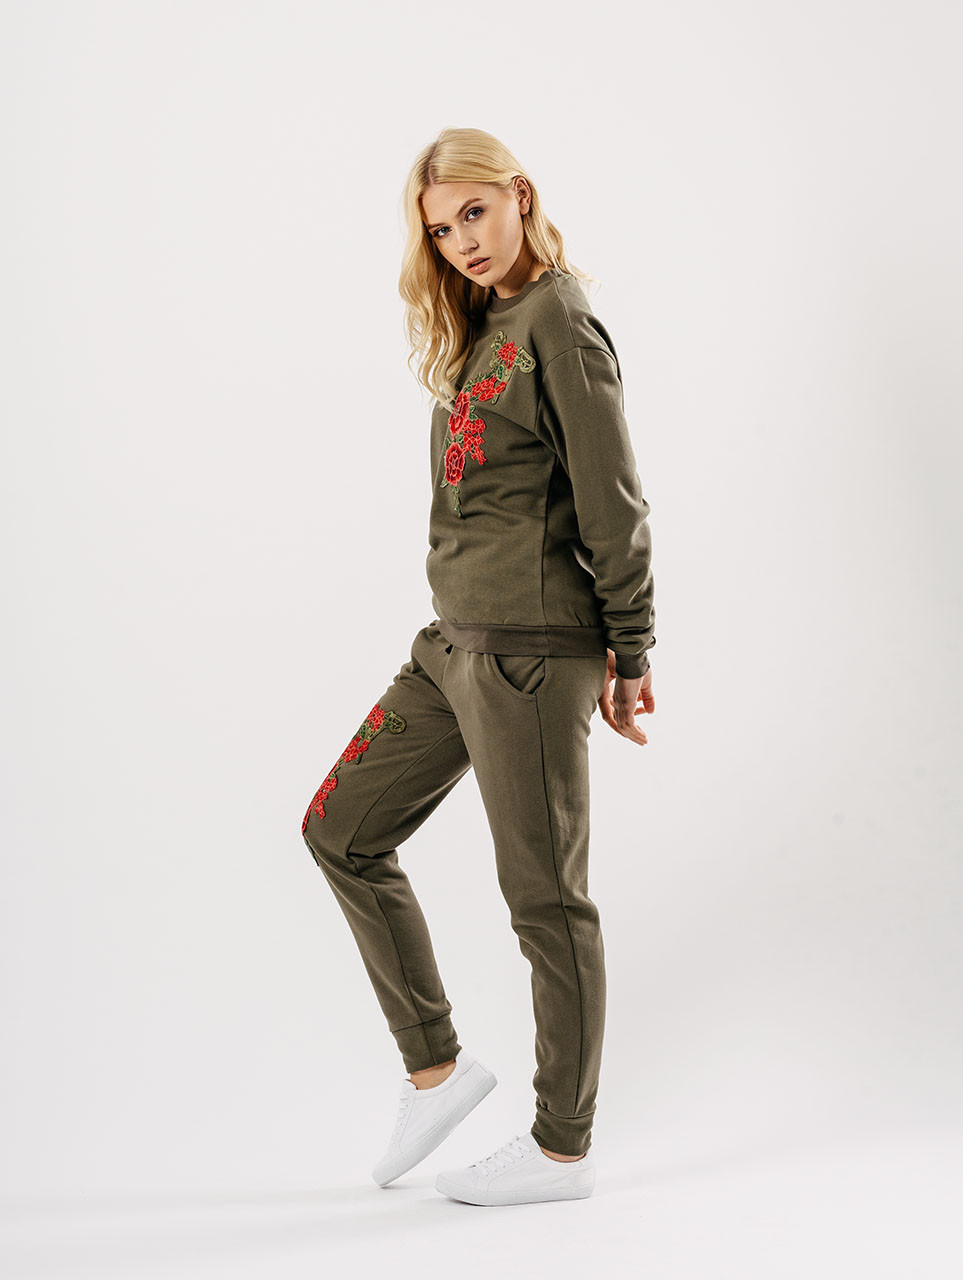 Khaki Embroidered Lounge Wear Suit Sets